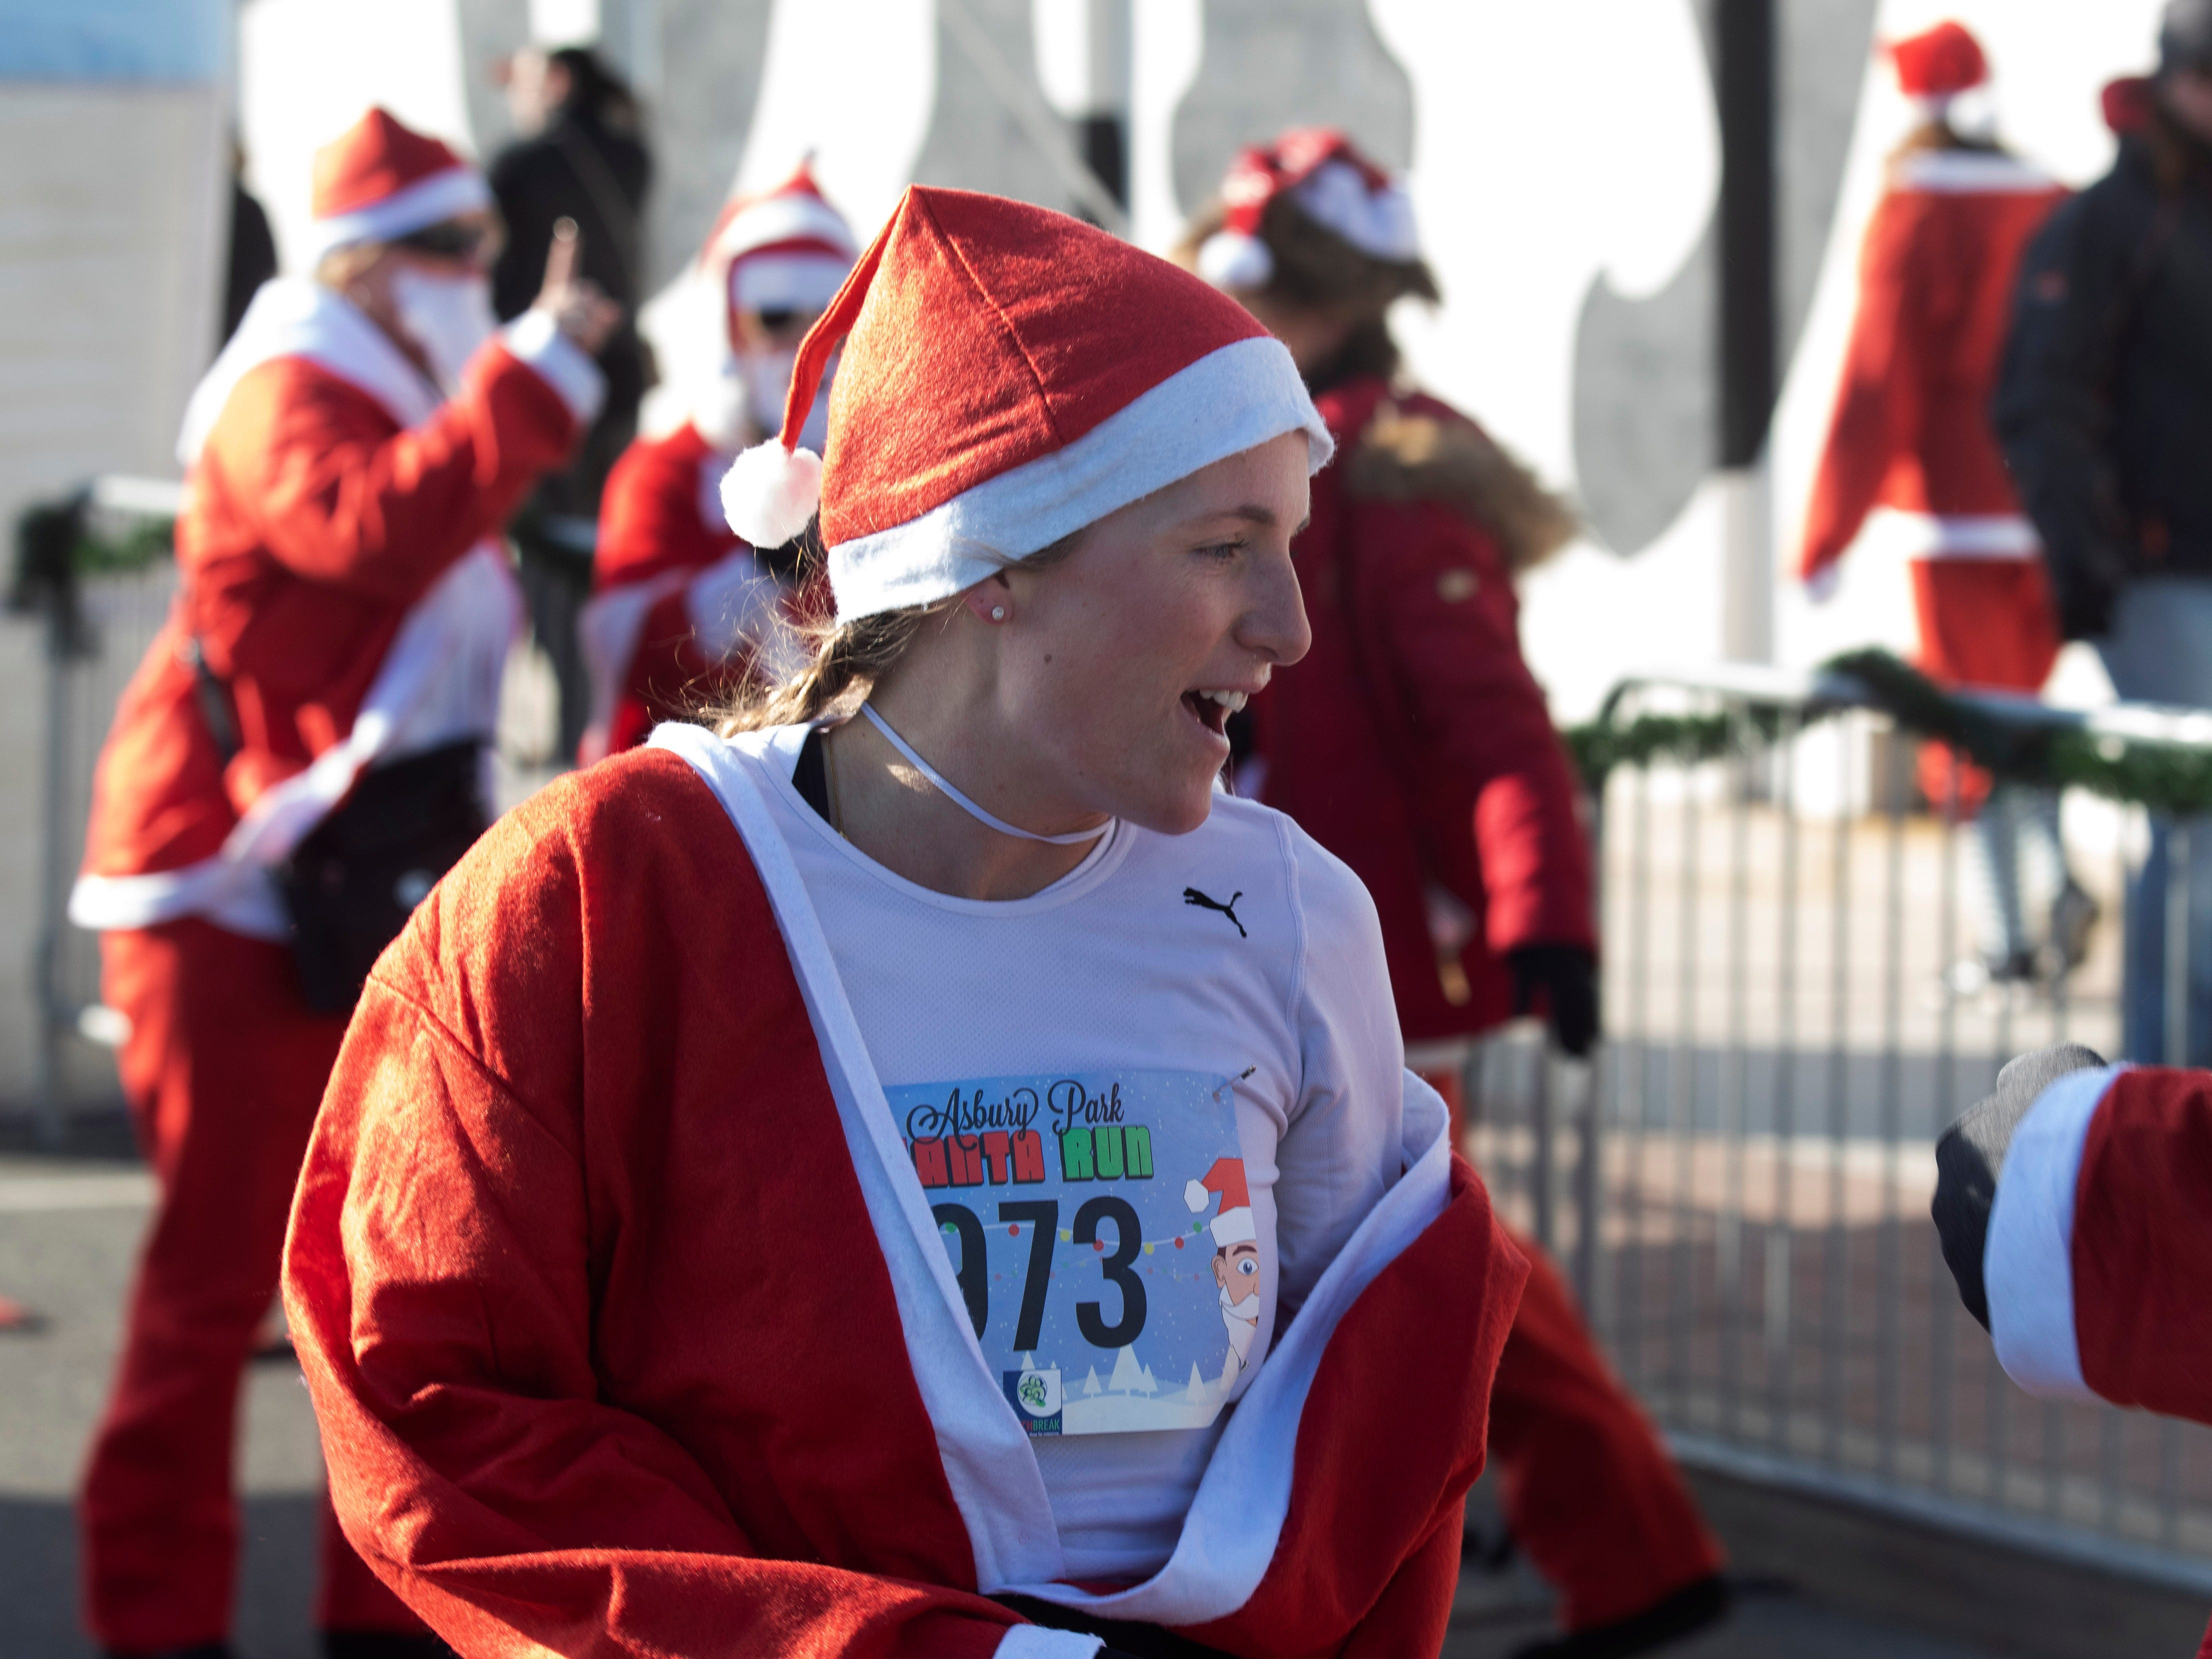 Beth Marzigliano of Lake Como was the women's winner in the 2018 Santa Run. Runners brave the cold to participate in the annual Santa Run 5K in Asbury Park on December 8, 2018.